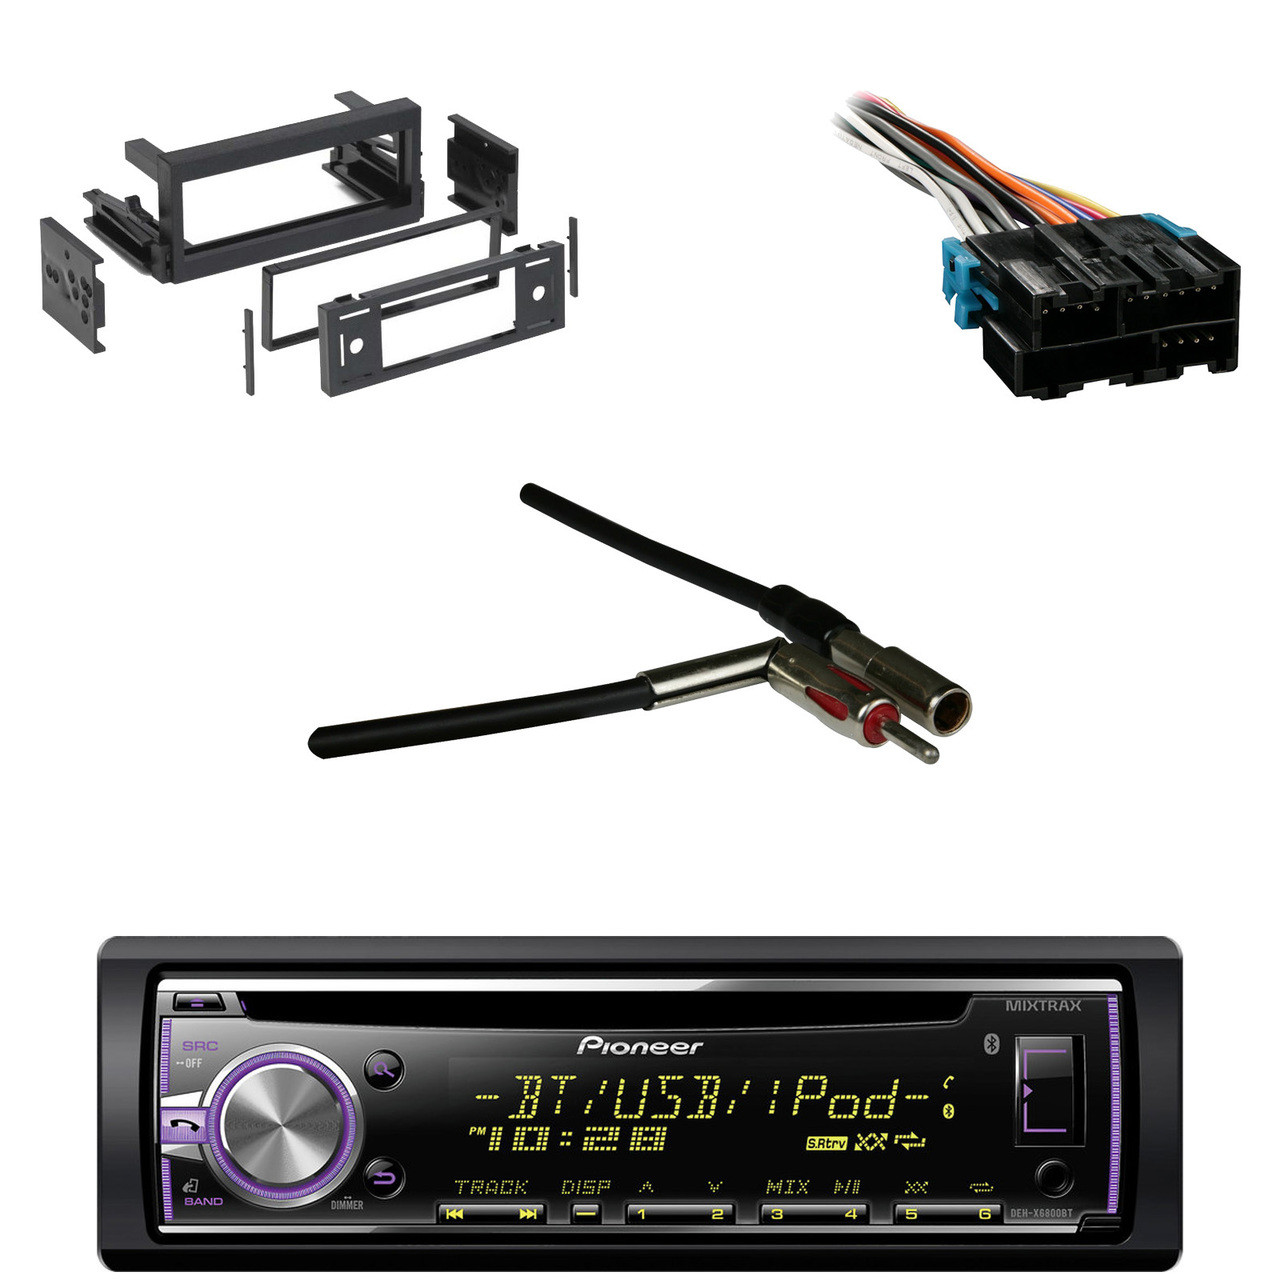 bluetooth pioneer cd car receiver gm wire harness antenna adapter metra din kit [ 1280 x 1280 Pixel ]